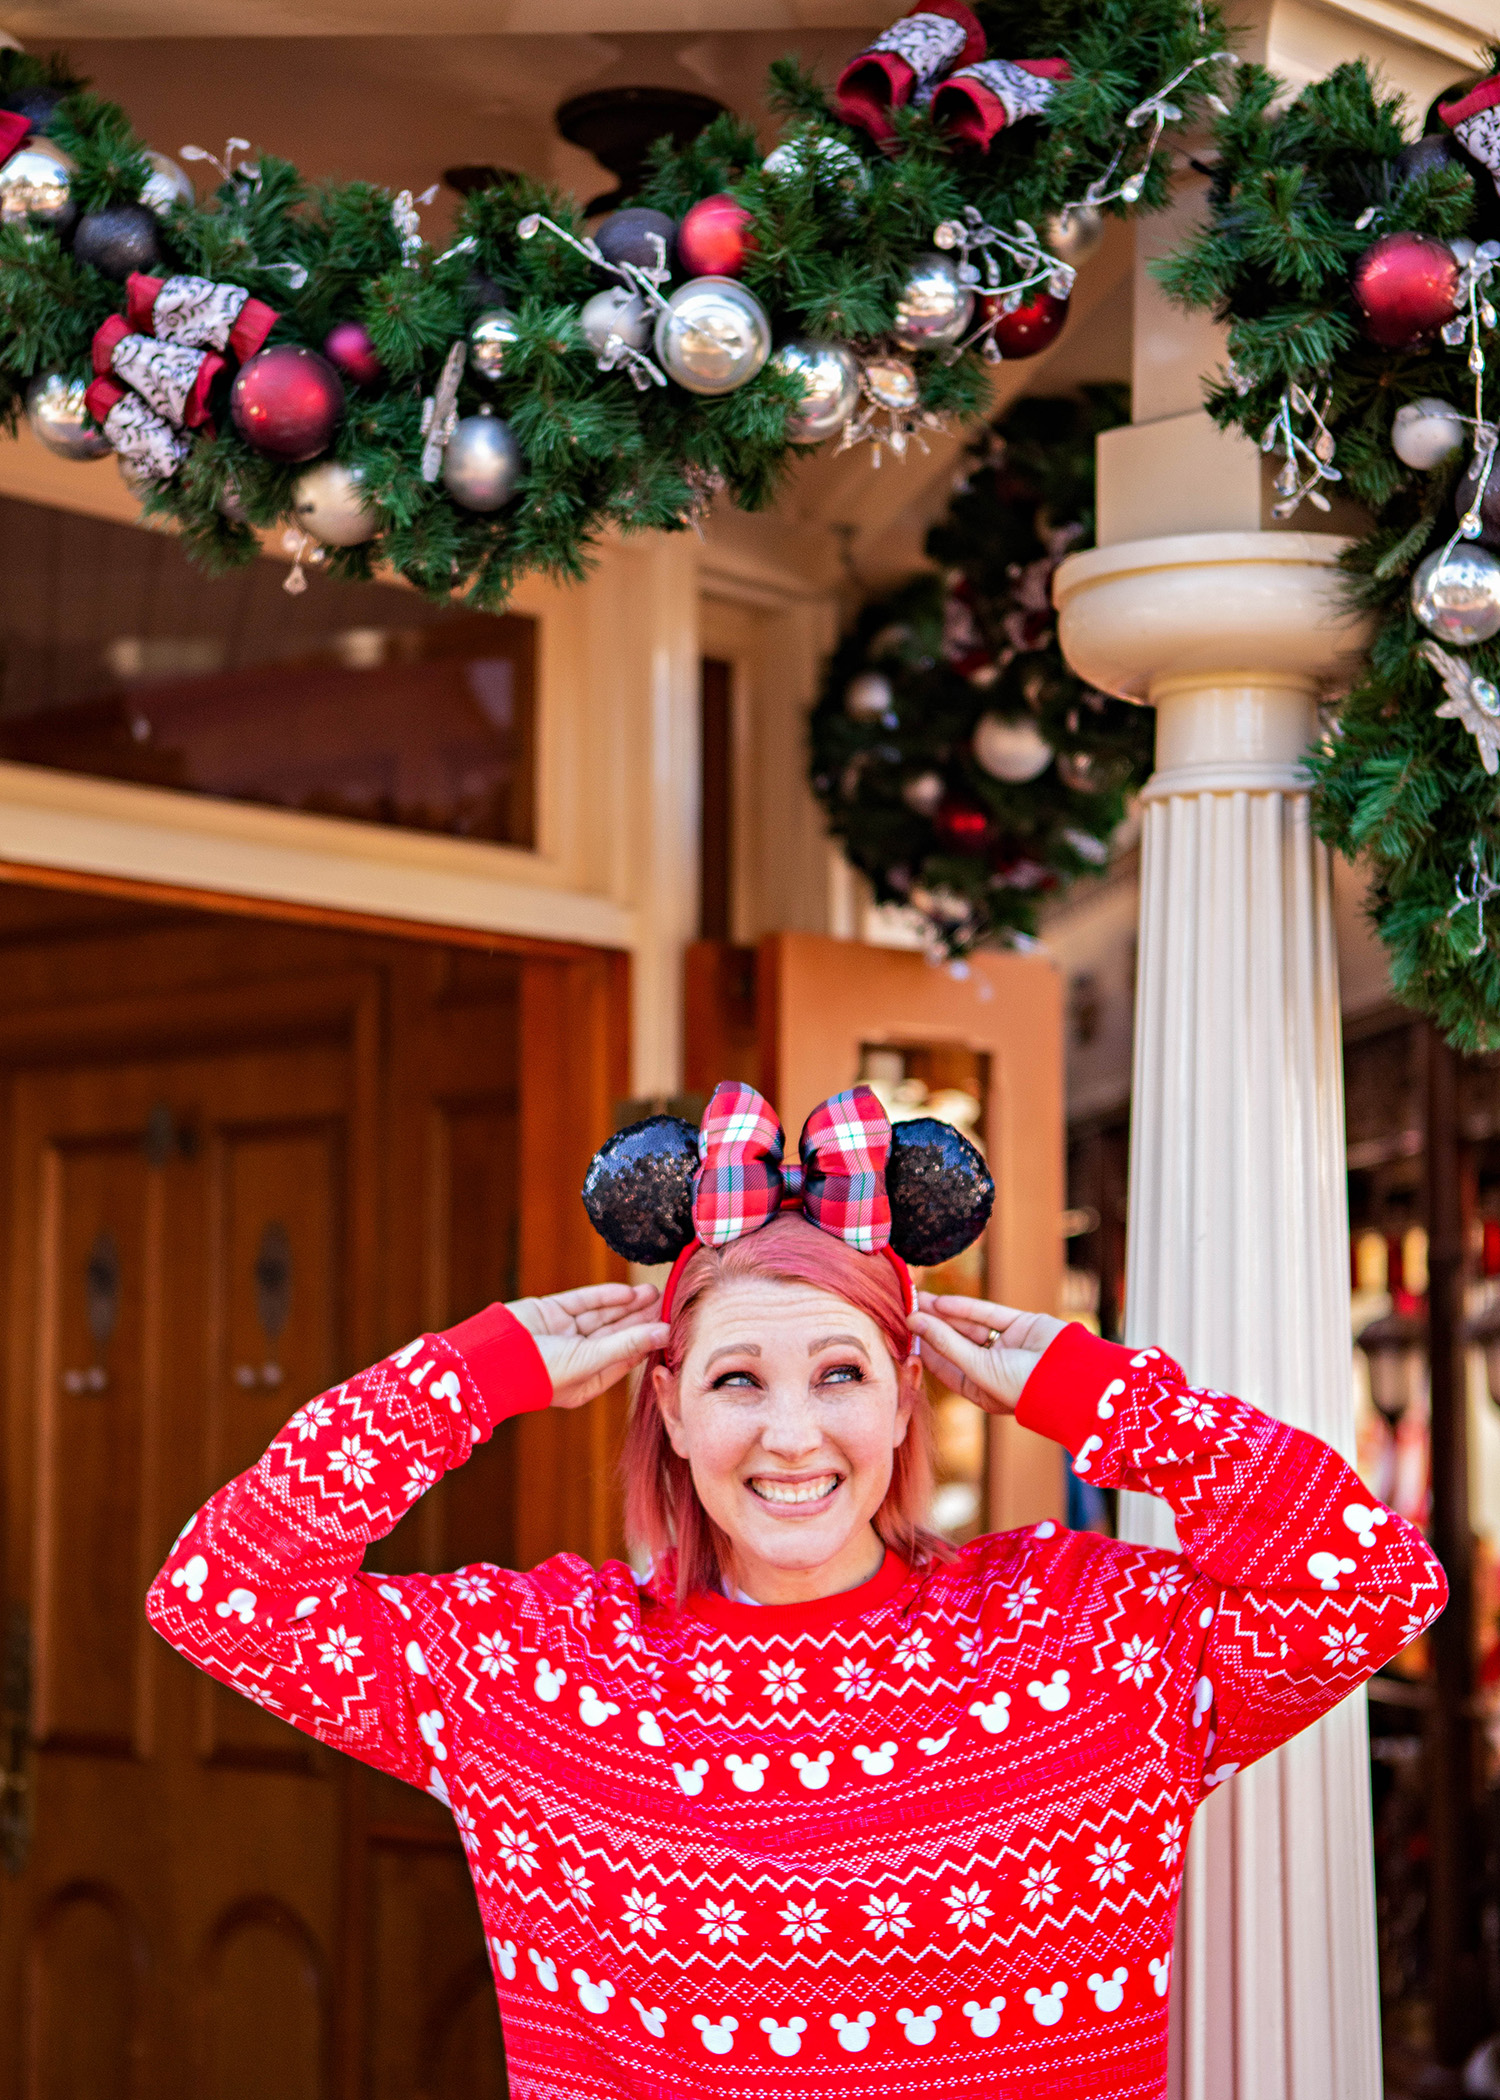 Gearing up for Disneyland Christmas? This is the ultimate guide to all entertainment, food and decor! A must read before your trip!